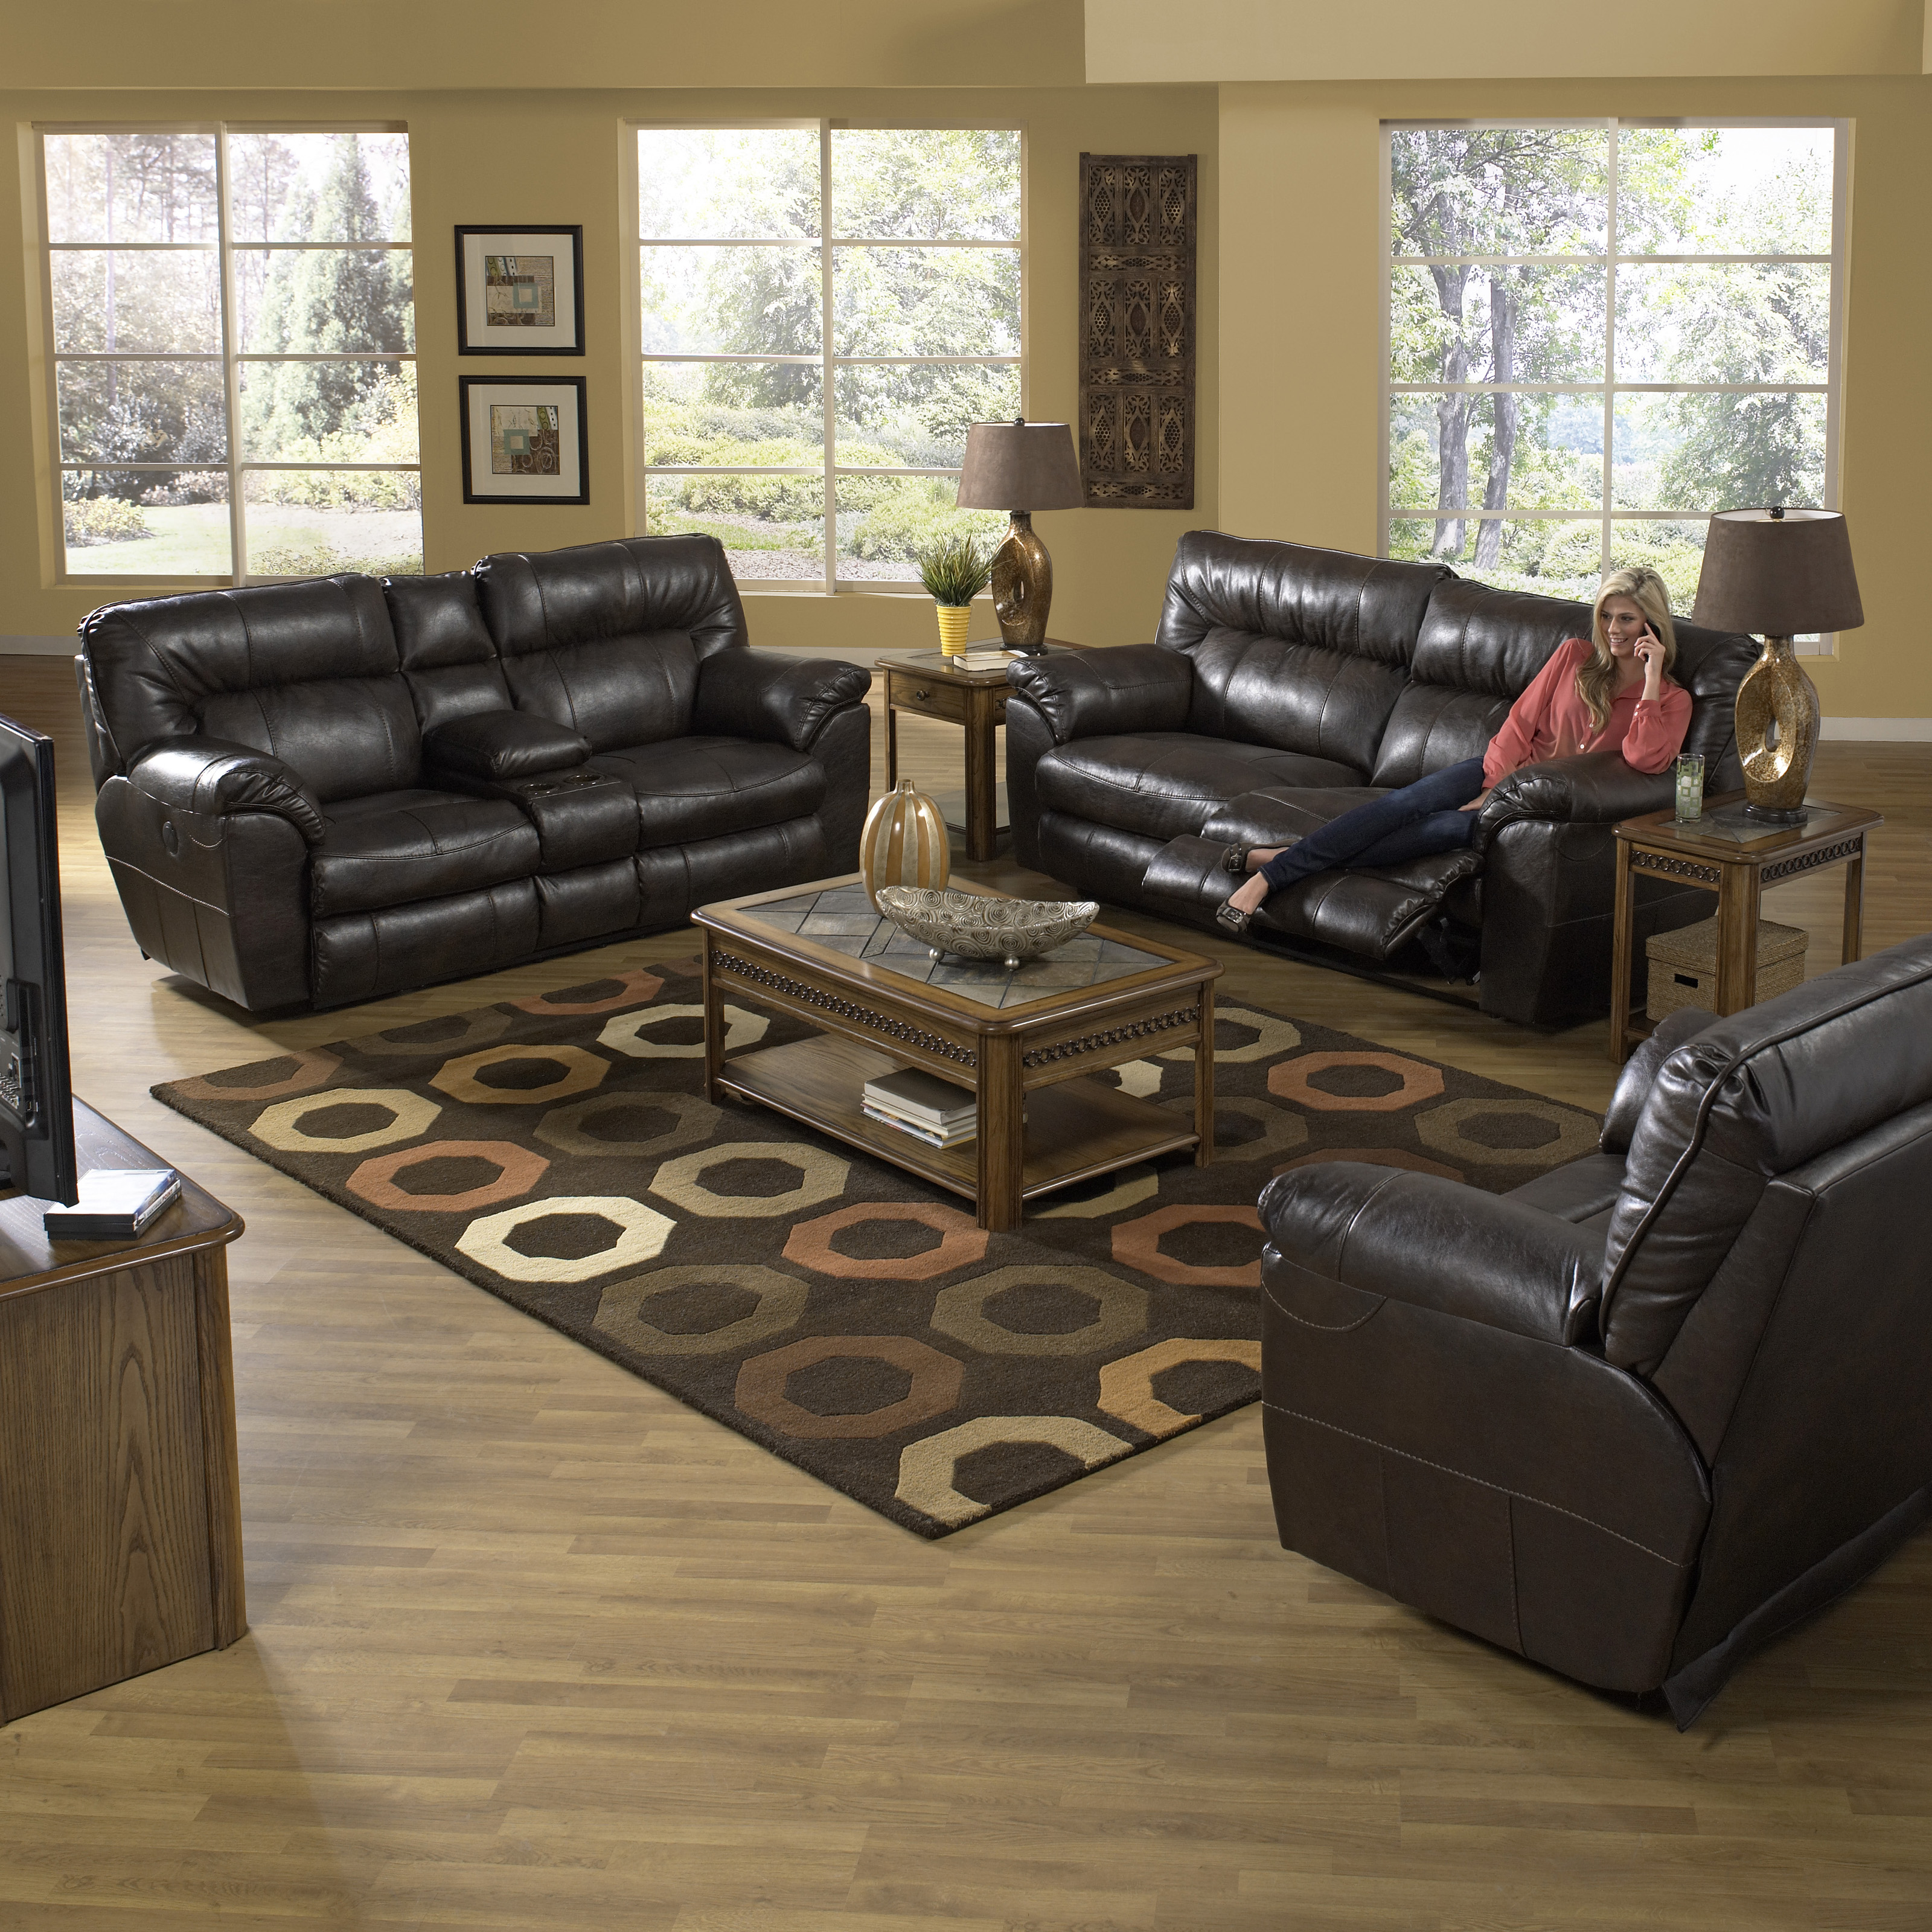 & Catnapper Nolan Leather Reclining Sofa Set - Goa | Hayneedle islam-shia.org